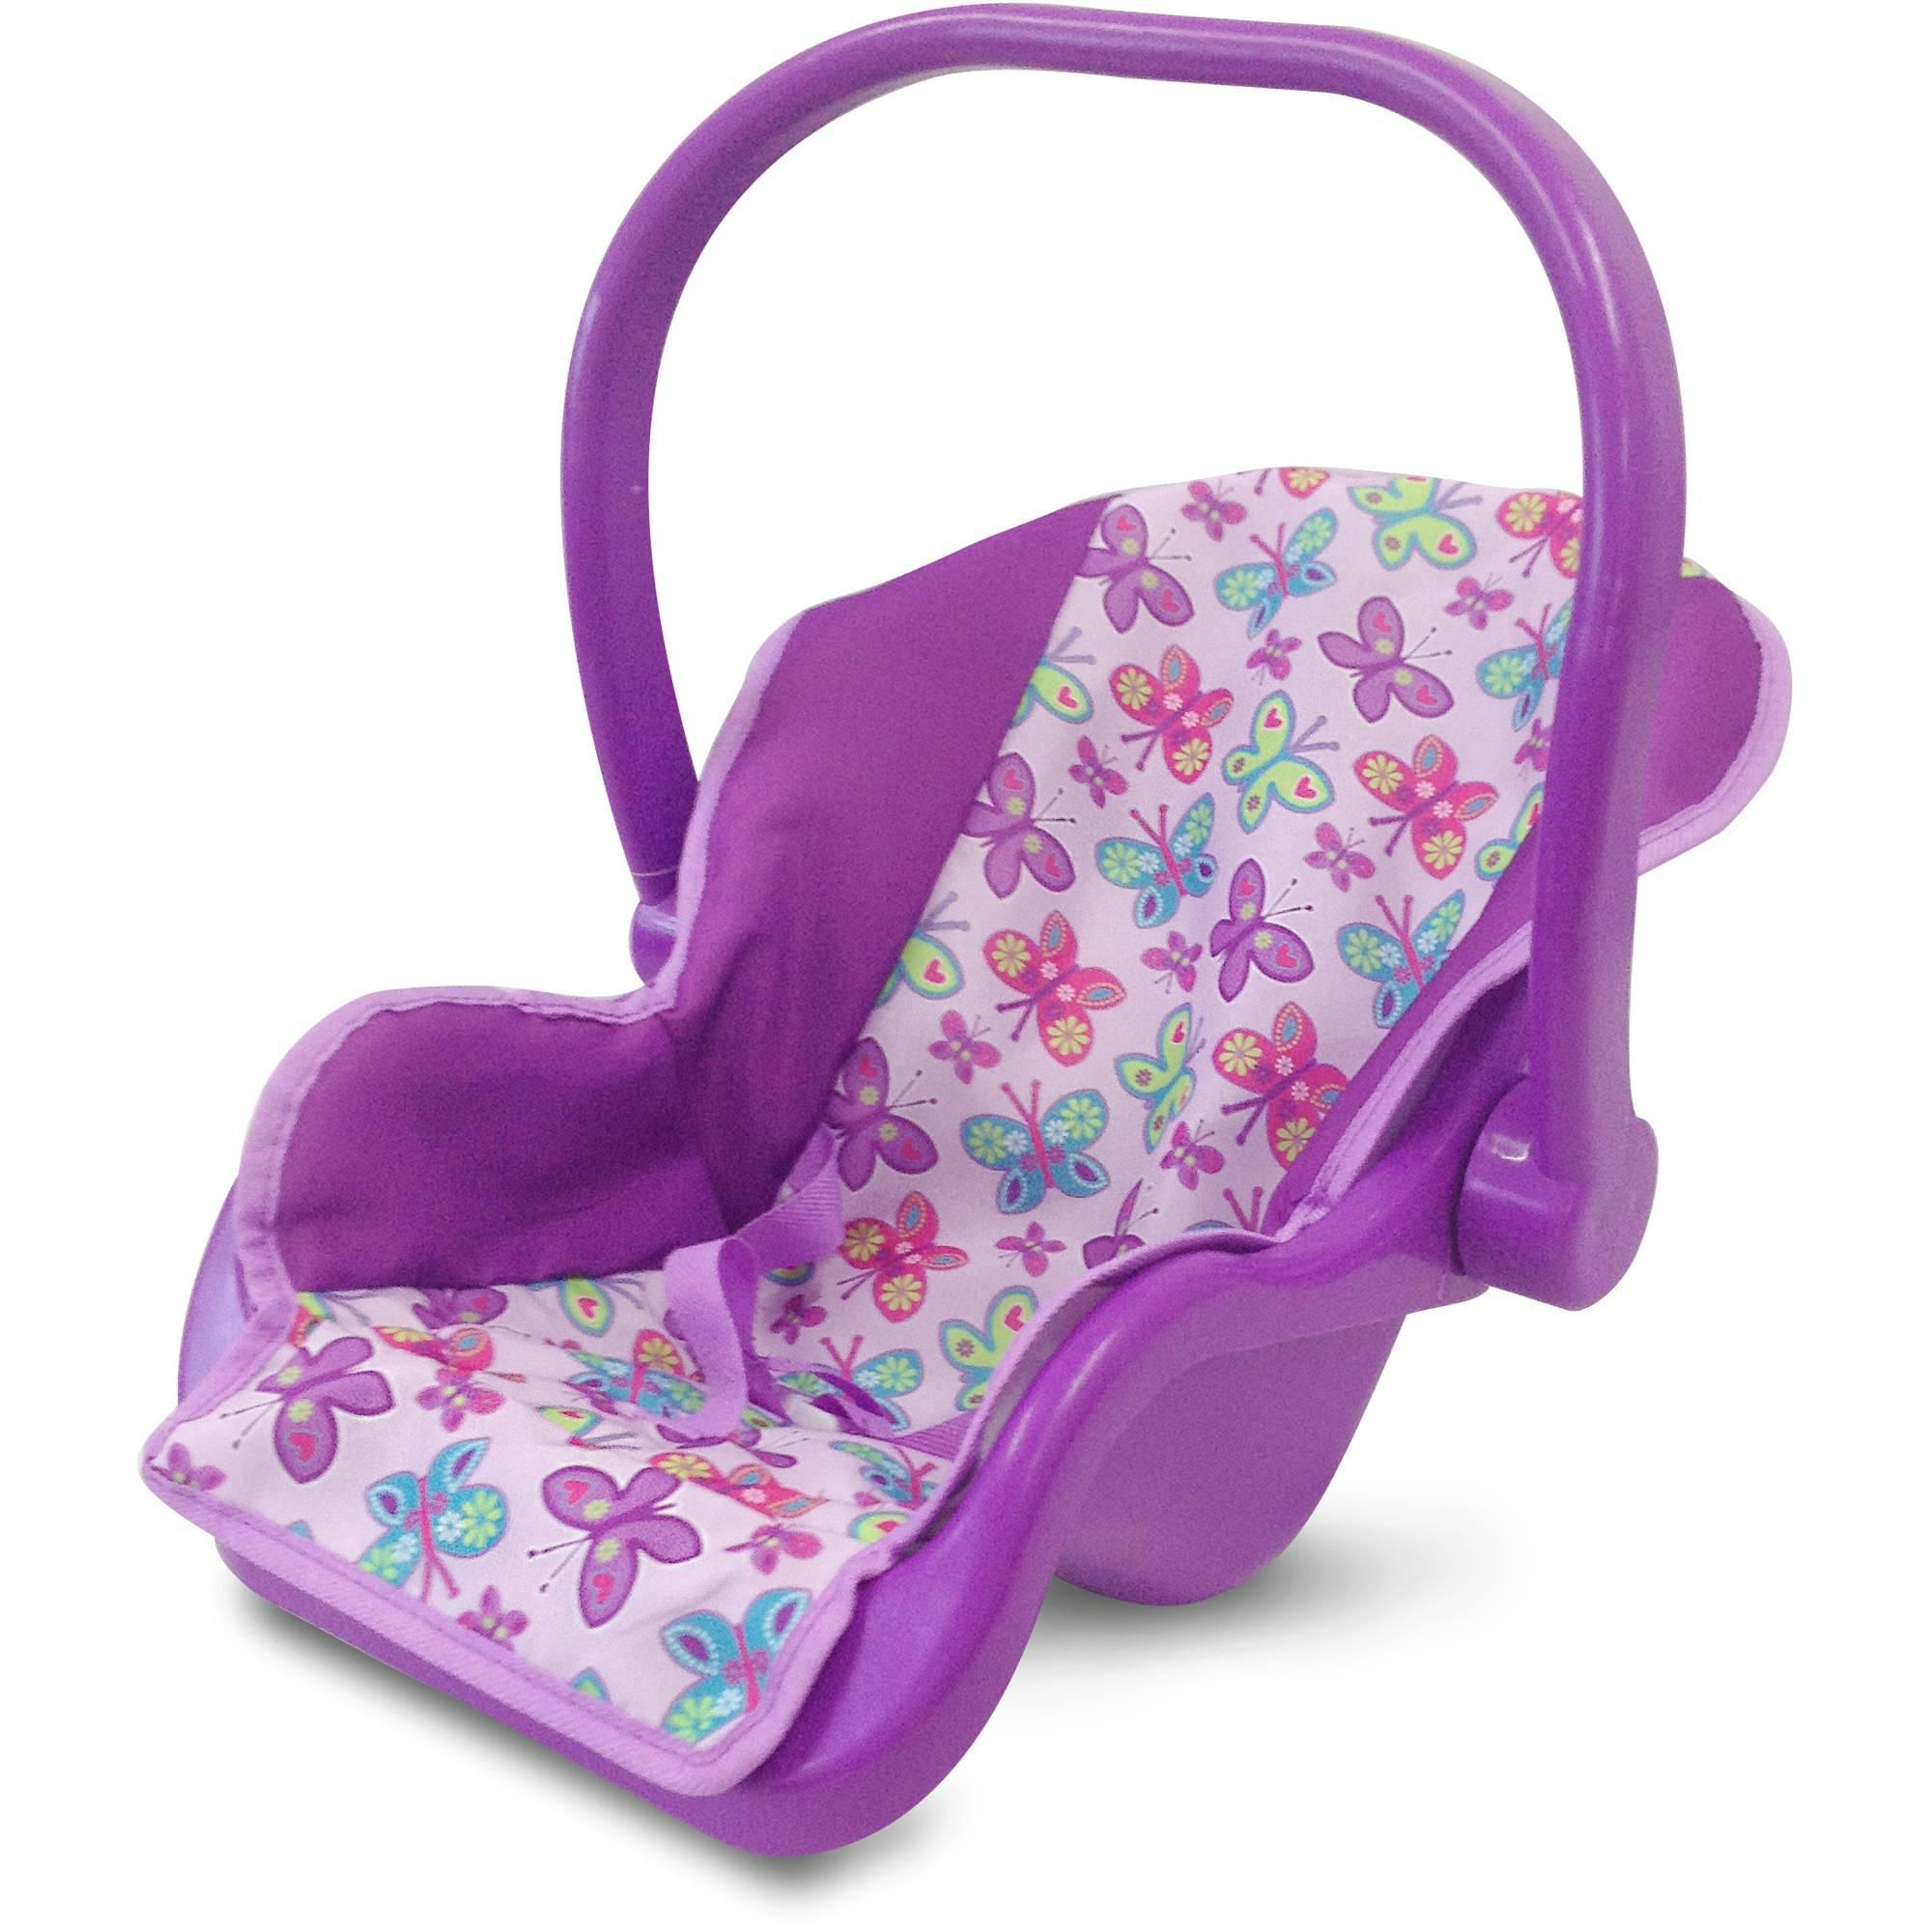 baby alive car seat walmart Google Search Baby doll